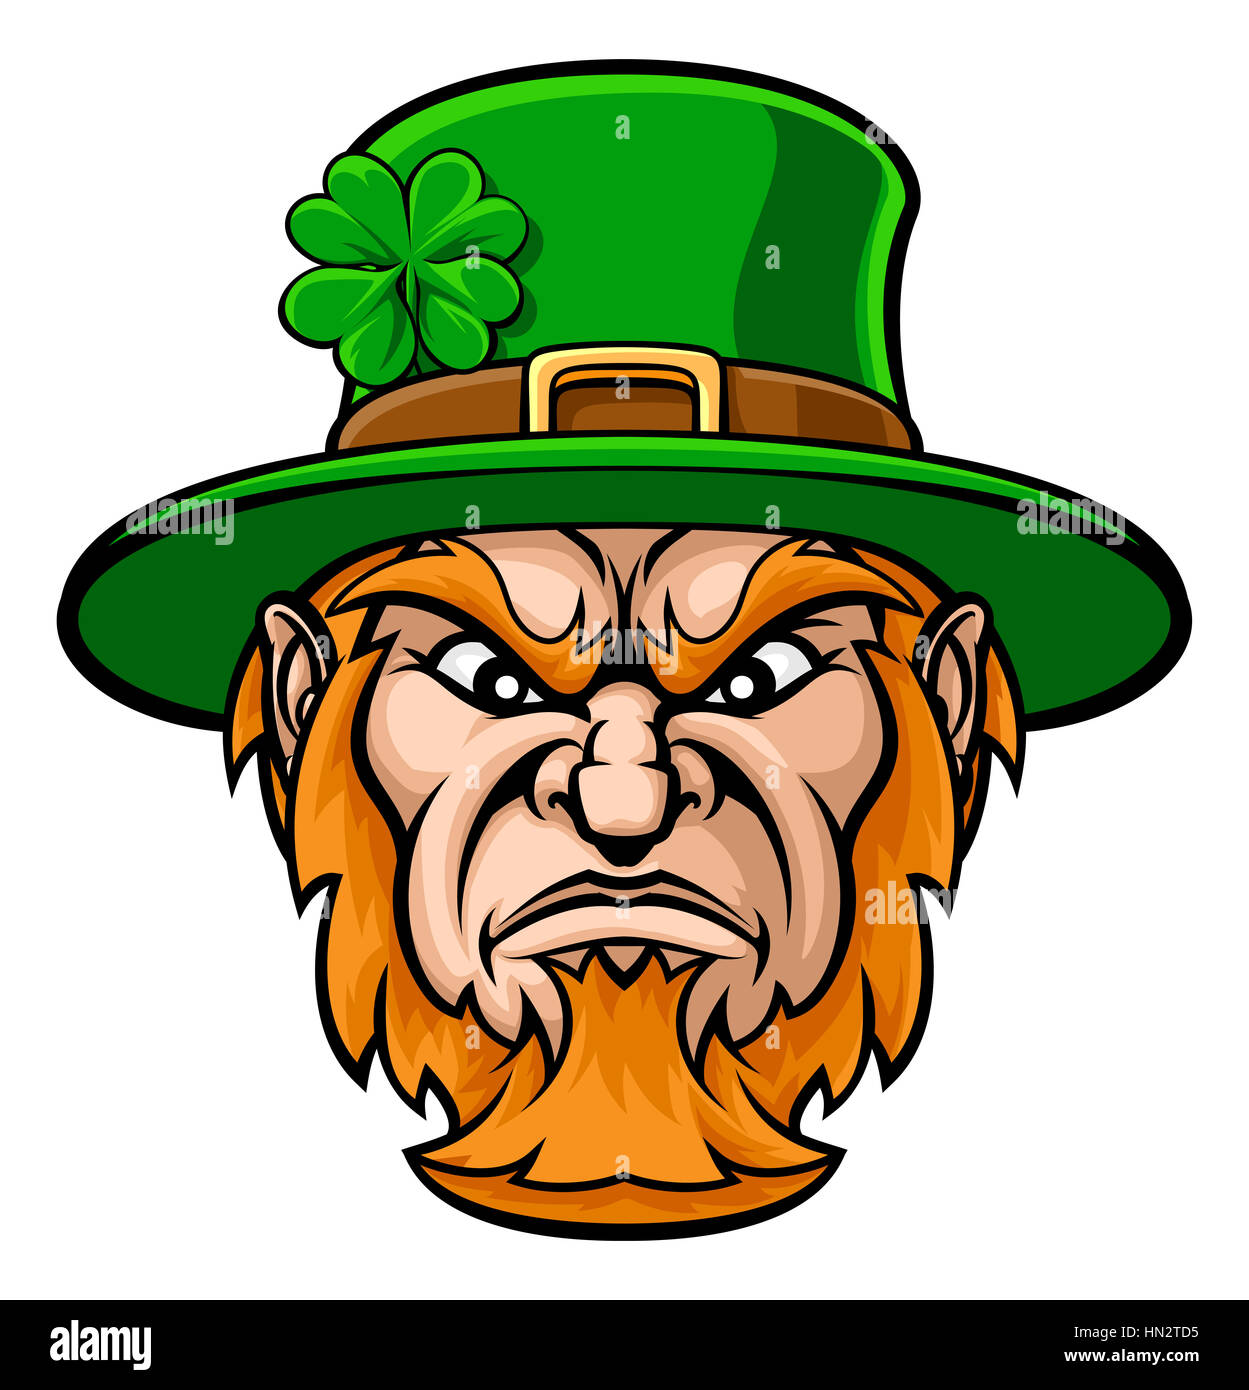 Tough cartoon leprechaun st patricks day character or sports mascot tough cartoon leprechaun st patricks day character or sports mascot altavistaventures Gallery